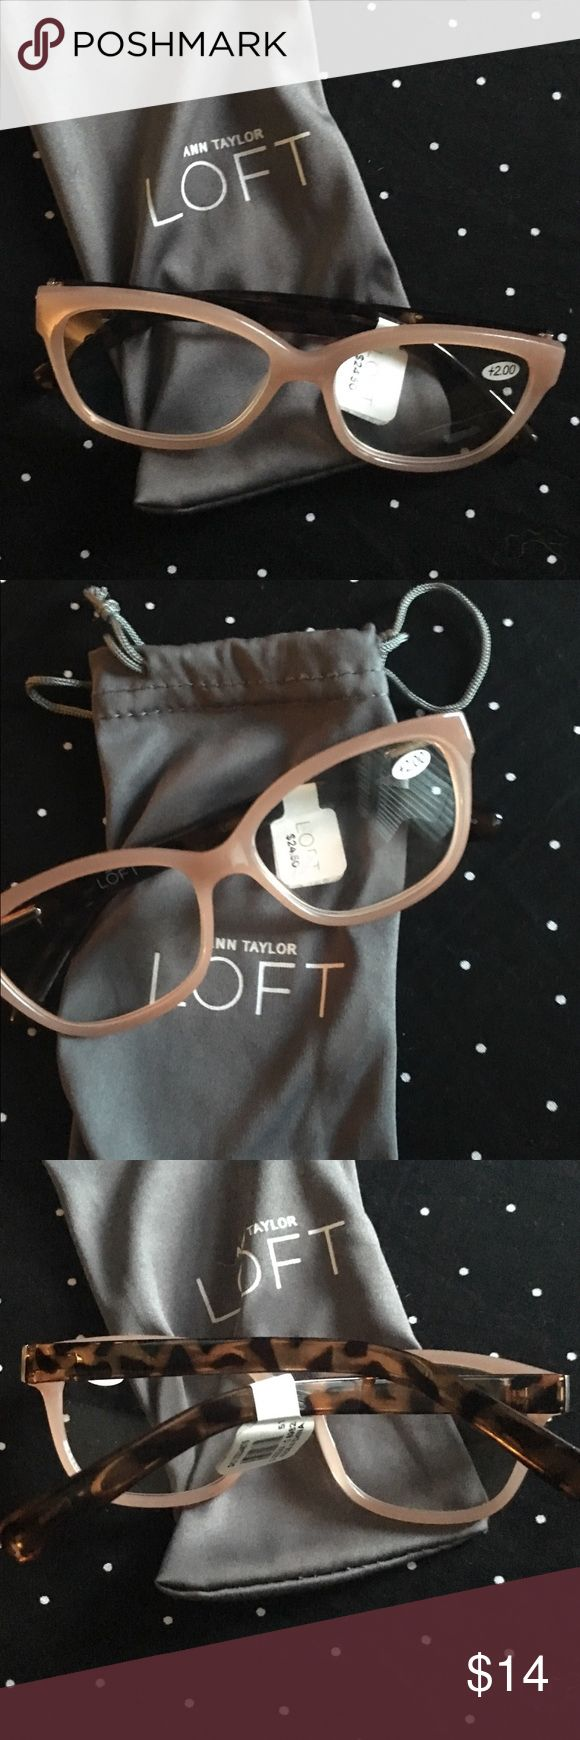 Fashionable LOFT Champagne Colored Frame Readers Brand New Fashionable LOFT Champagne Colored Frame Reading glasses‼️ Strength is 200.  Unused, the Champagne Rims are accented with Tortoise Shell Arms. A great buy‼️ GET THEM TODAY AT THIS GREAT PRICE🌺 LOFT Accessories Glasses